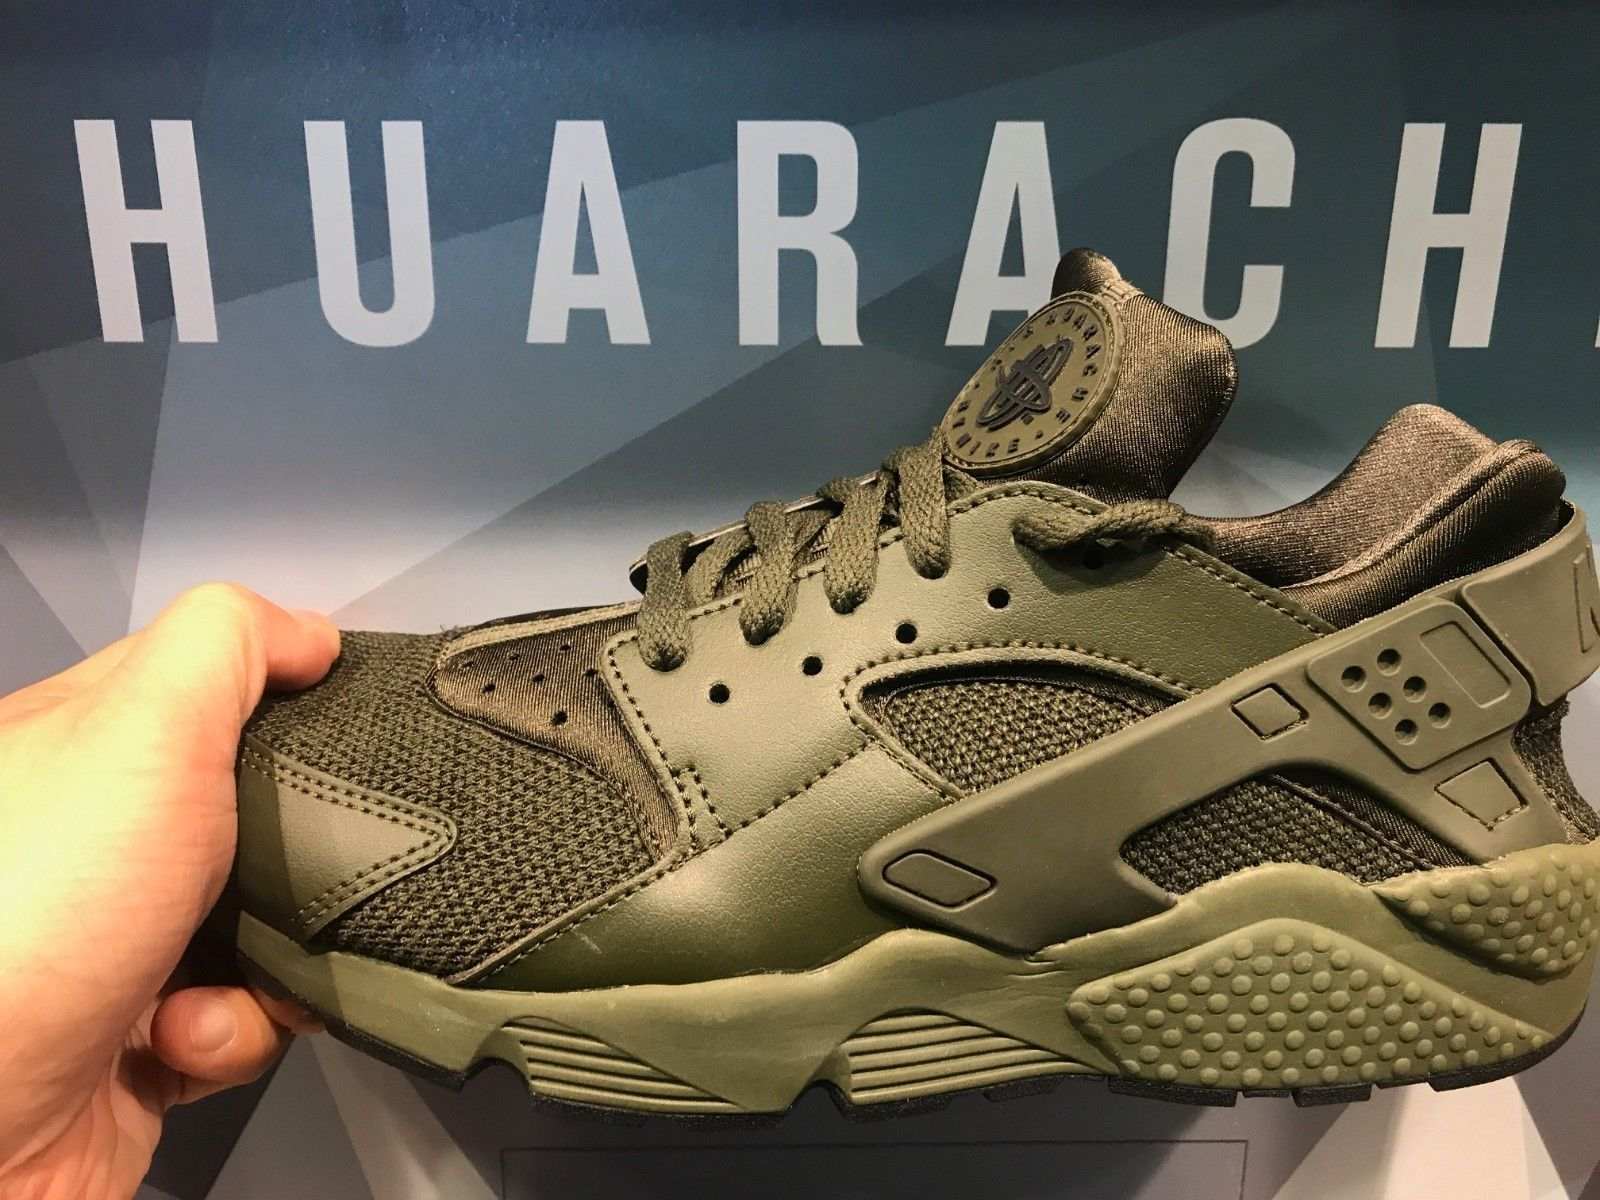 designer fashion 12fdf f8c6a Men 158971  Nike Air Huarache Olive Camo Men Sizes -  BUY IT NOW ONLY